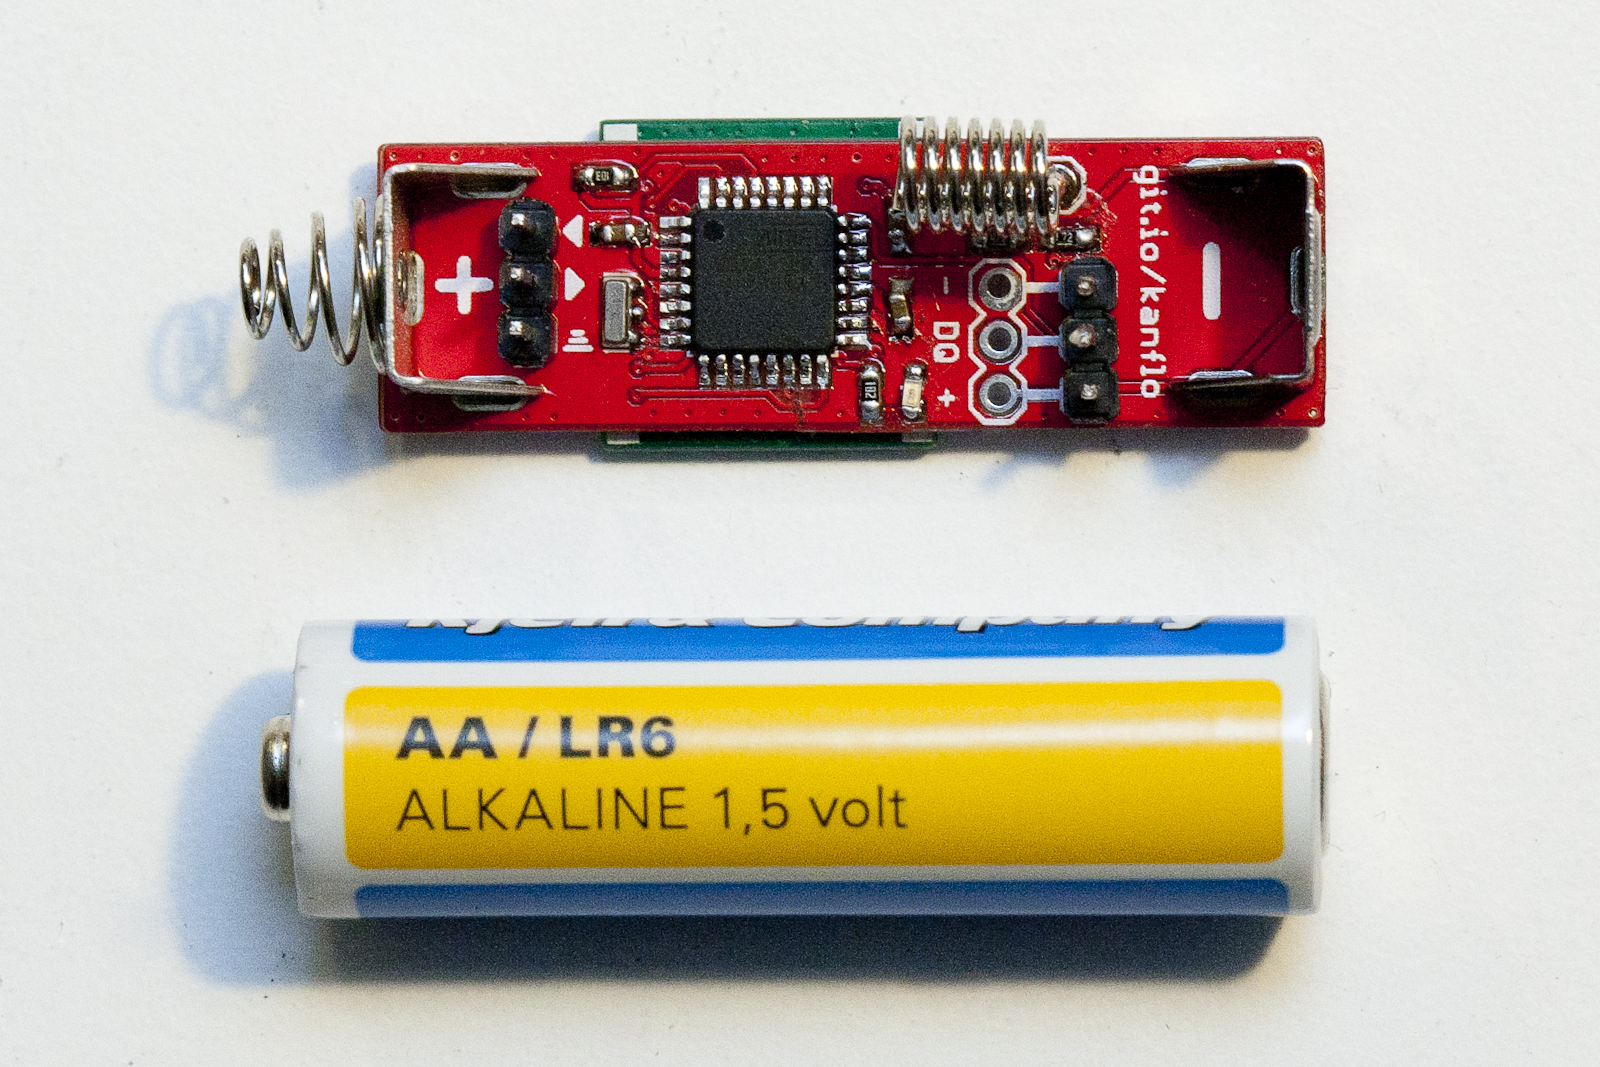 Software engineer shrinks Arduino down to the size of a AA battery